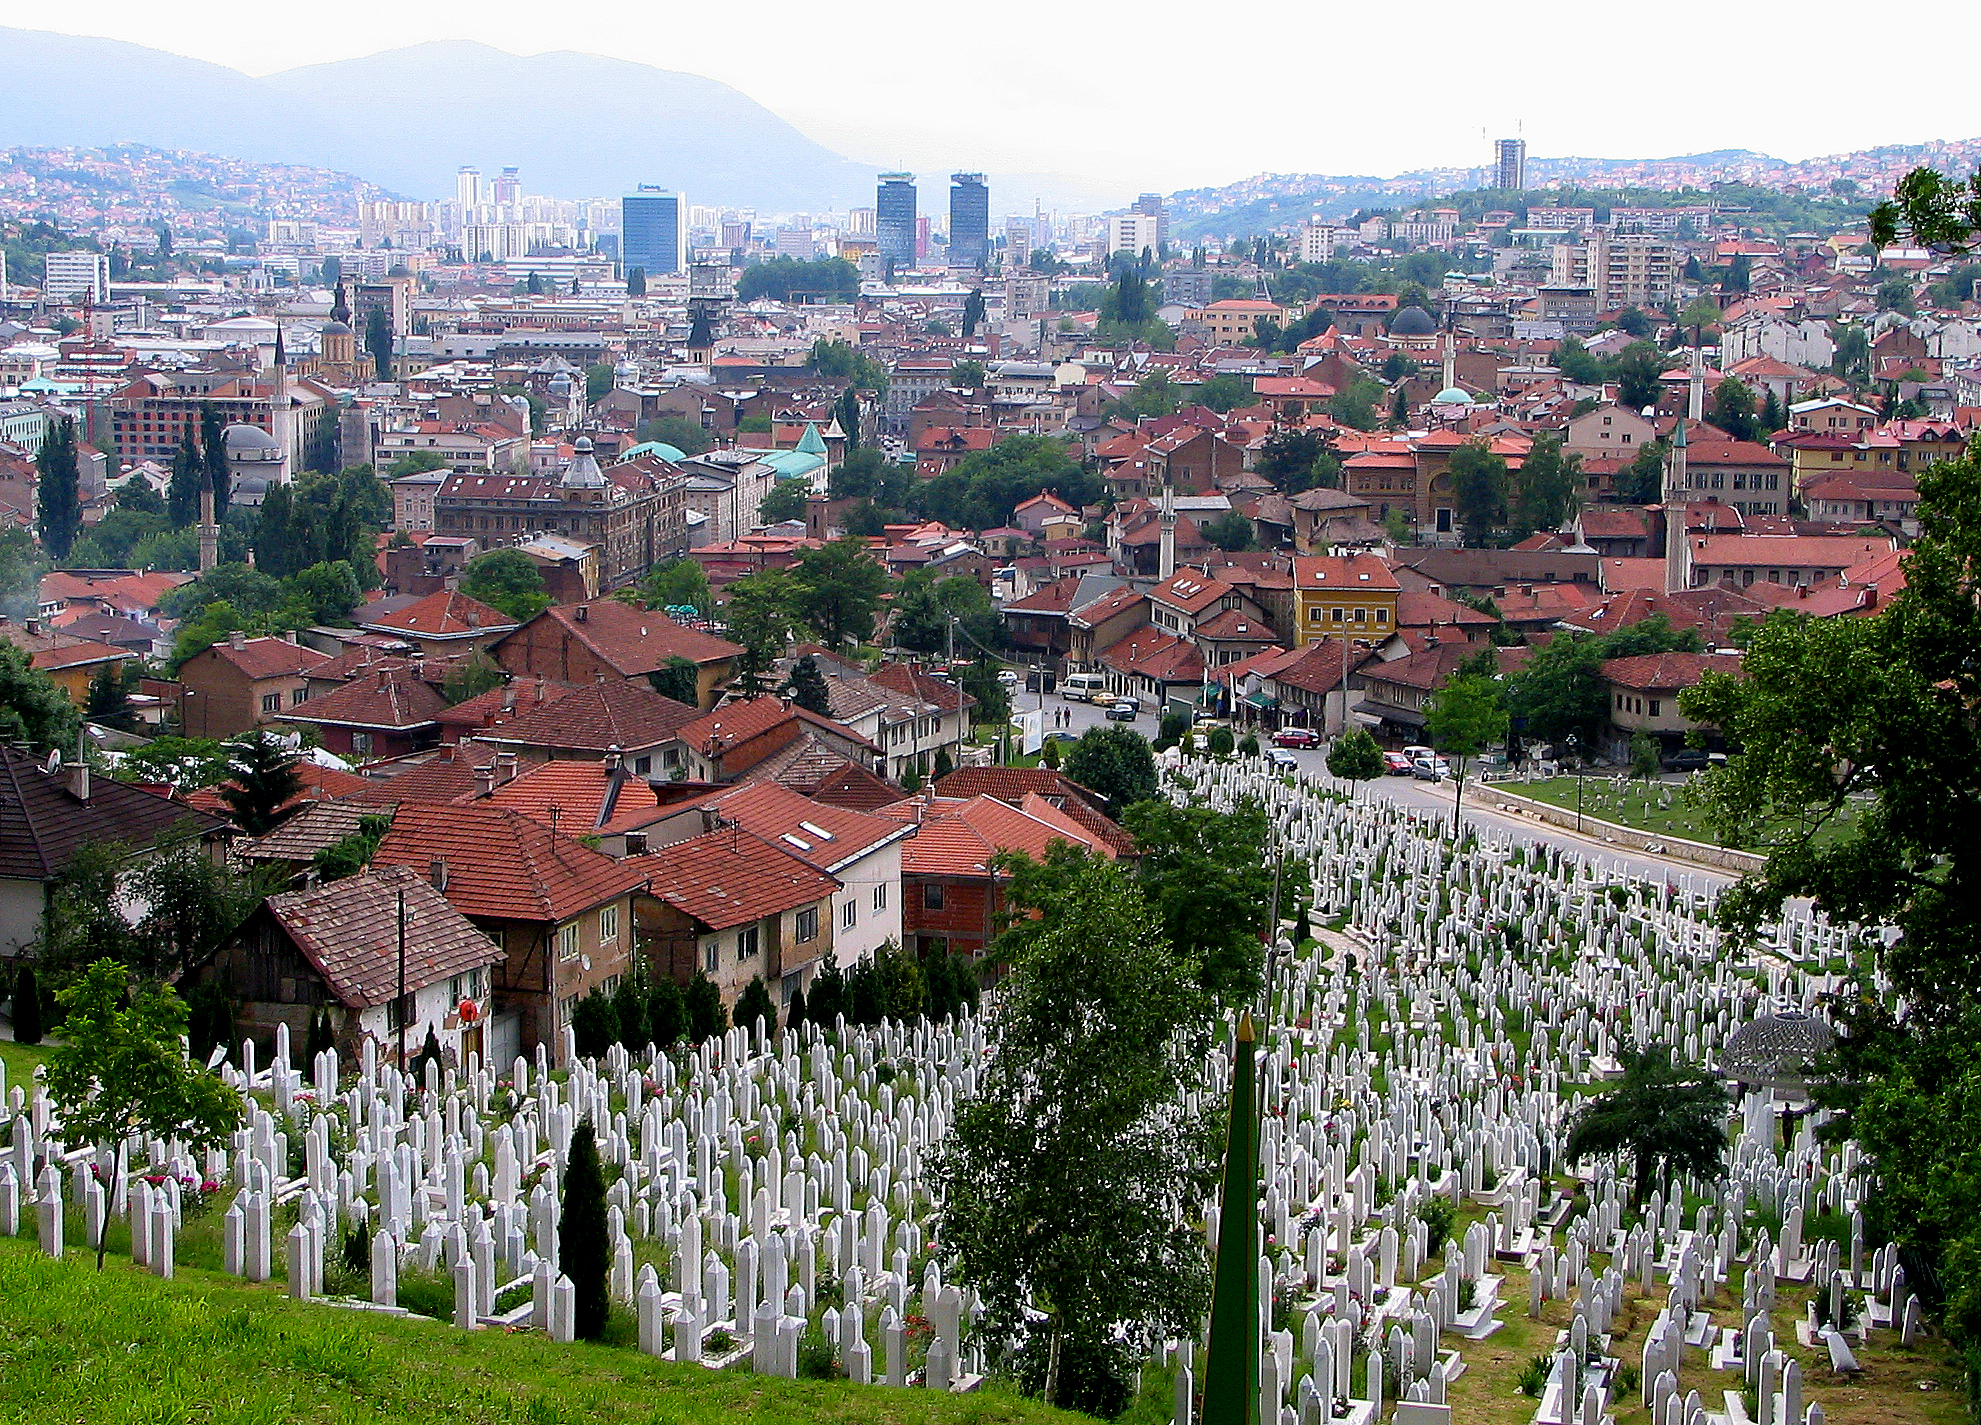 Sarajevo, May 2007. Photo by David Dufresne/ Flickr Creative Commons